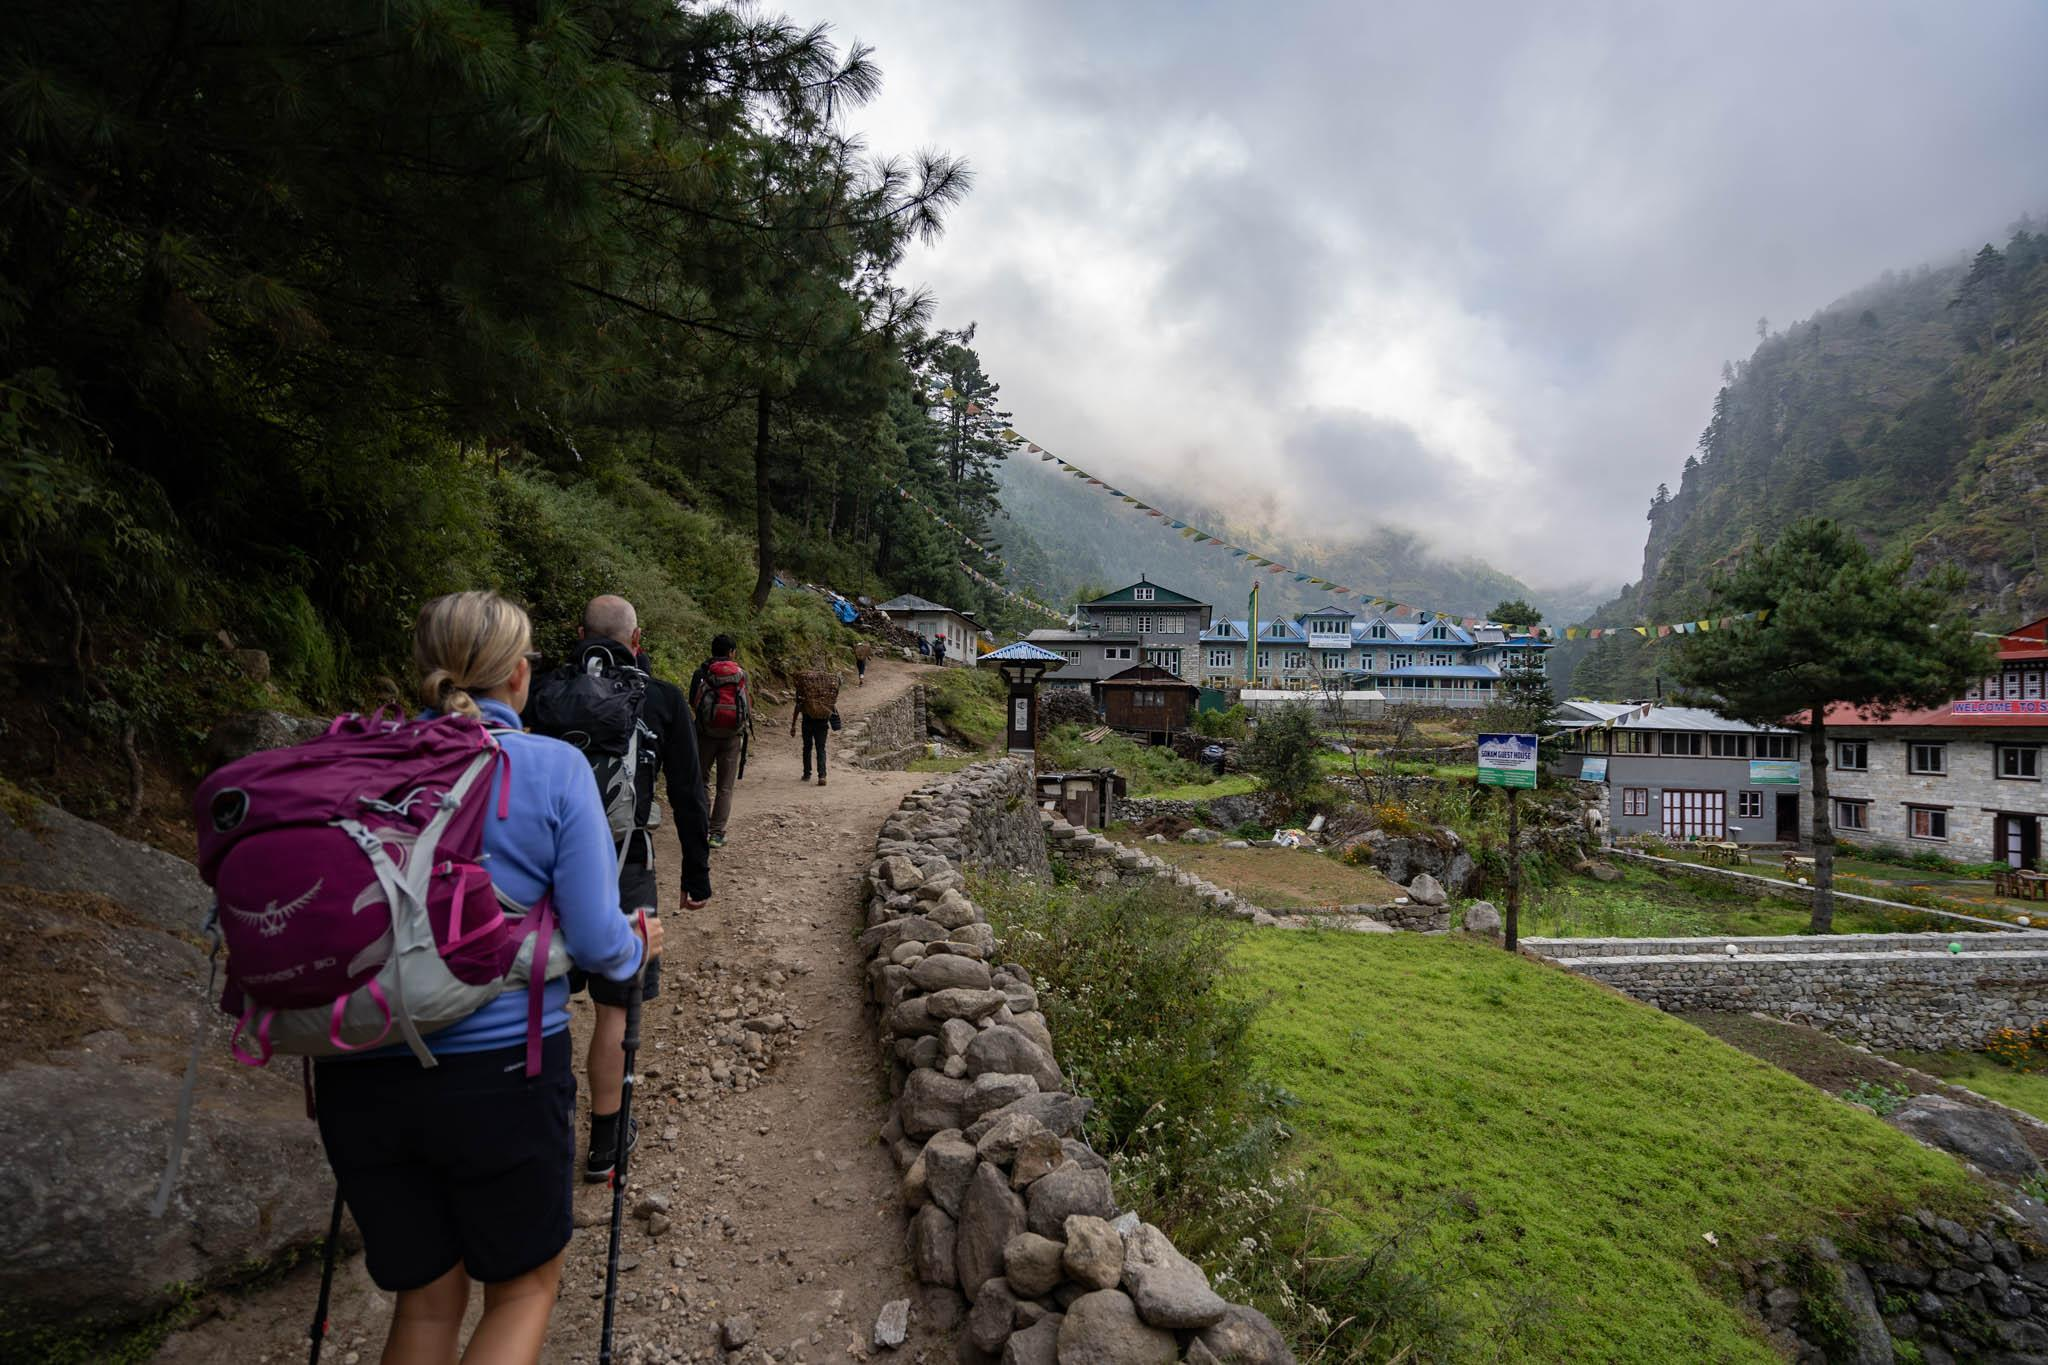 A trekking group arriving at a Nepalese village